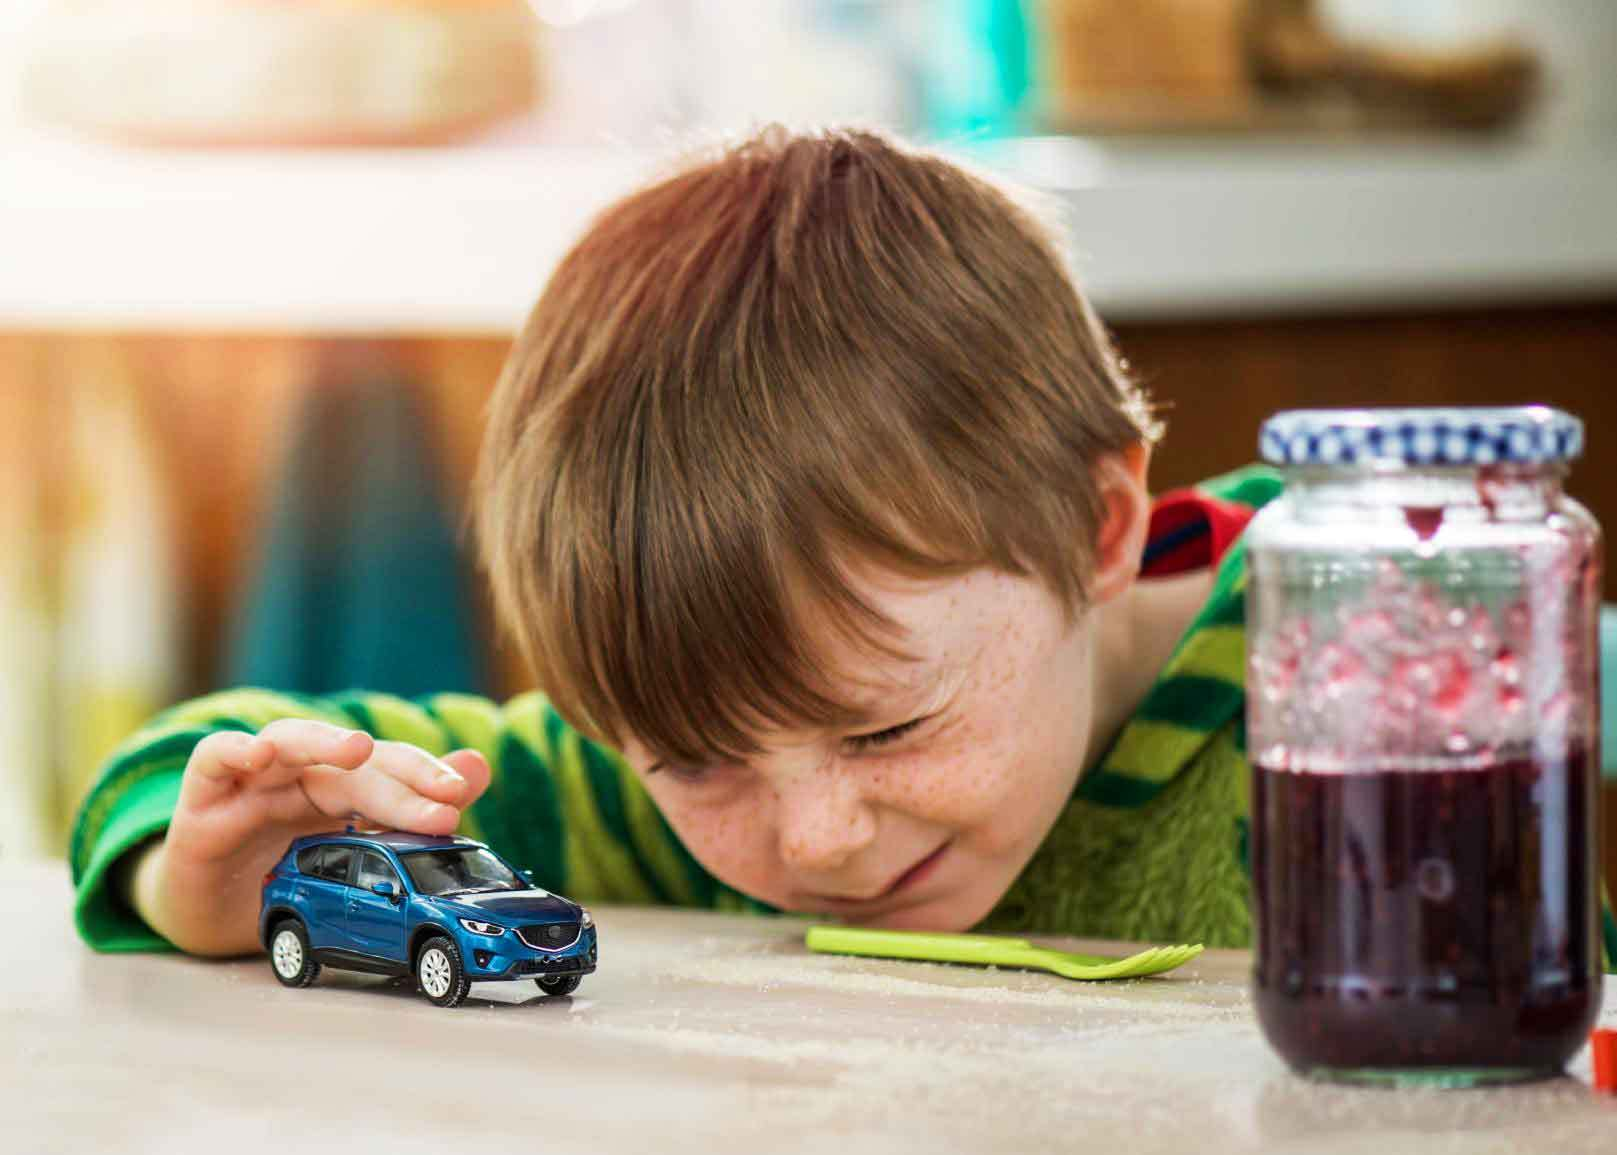 Kids influence car buying decisions